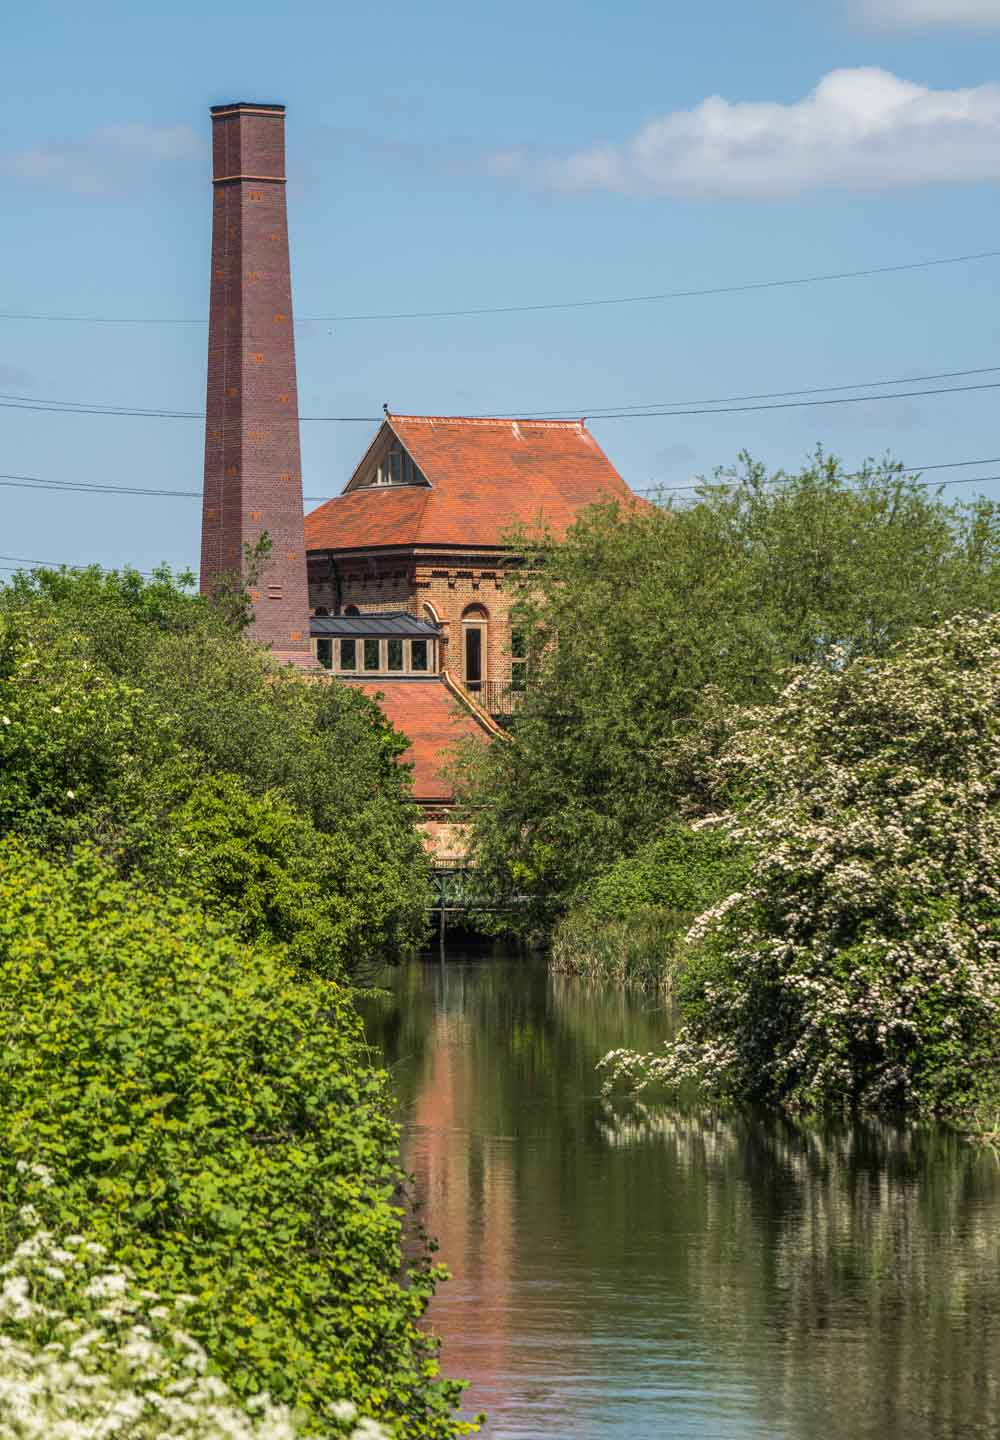 Engine-House Walthamstow Wetlands: Wild London